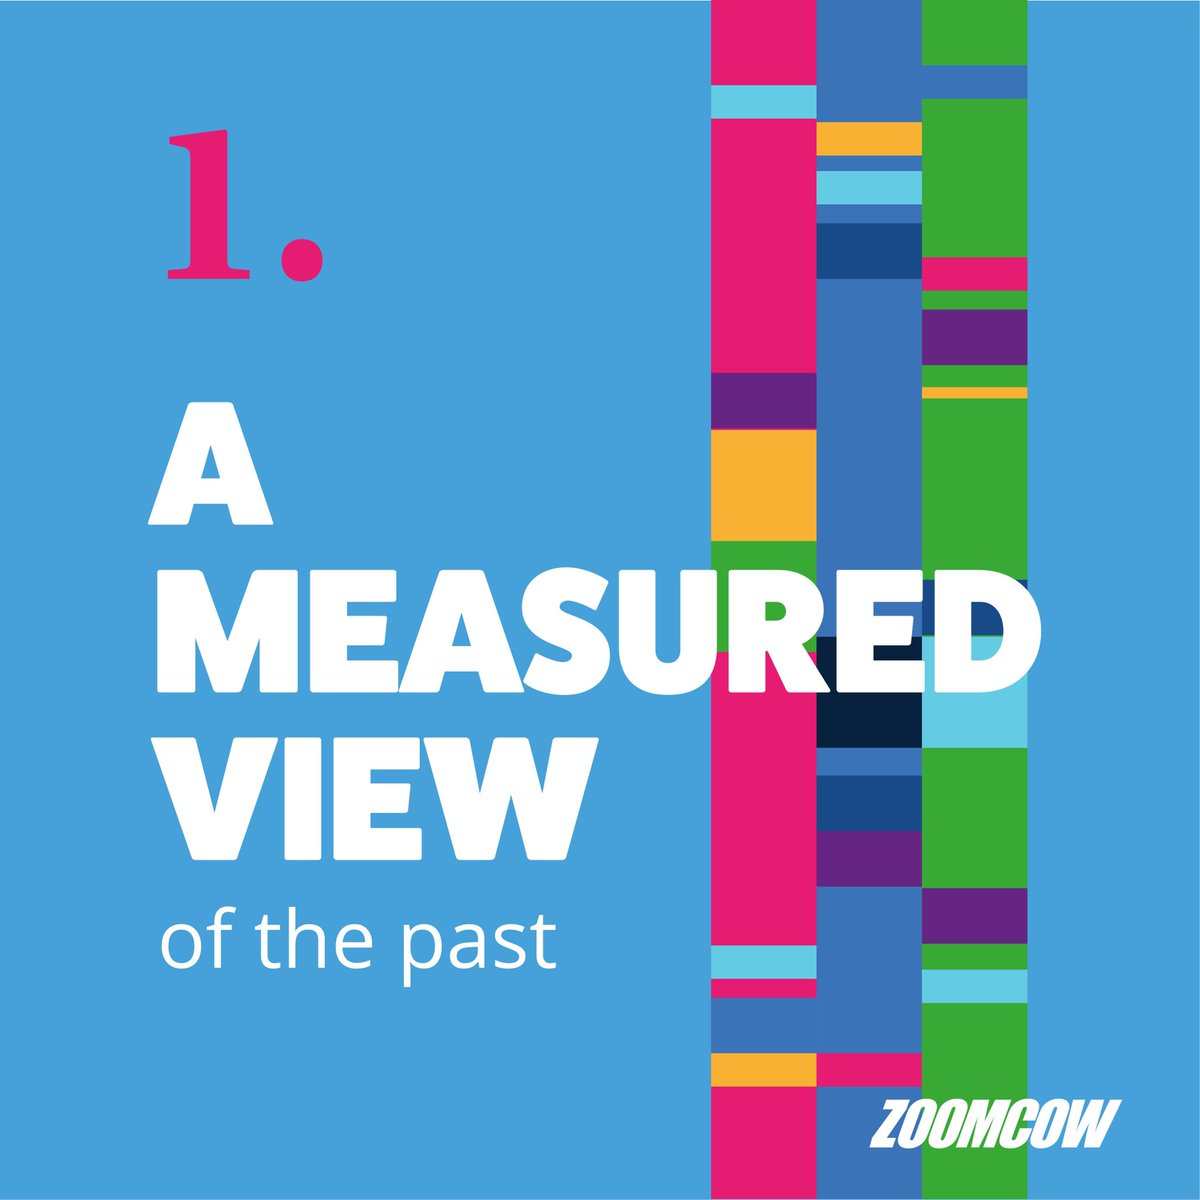 12 days of Zoomcow: Day 1 - A measured view of the pastFind out more: http://www.zoomcow.co.uk#zoomcow #leadership #makeanimpact #leadthechange #consultancy #nurture #training #insight #growth #focus #purpose #collaboration #humanbrilliance #xmas2019 #newyear2020